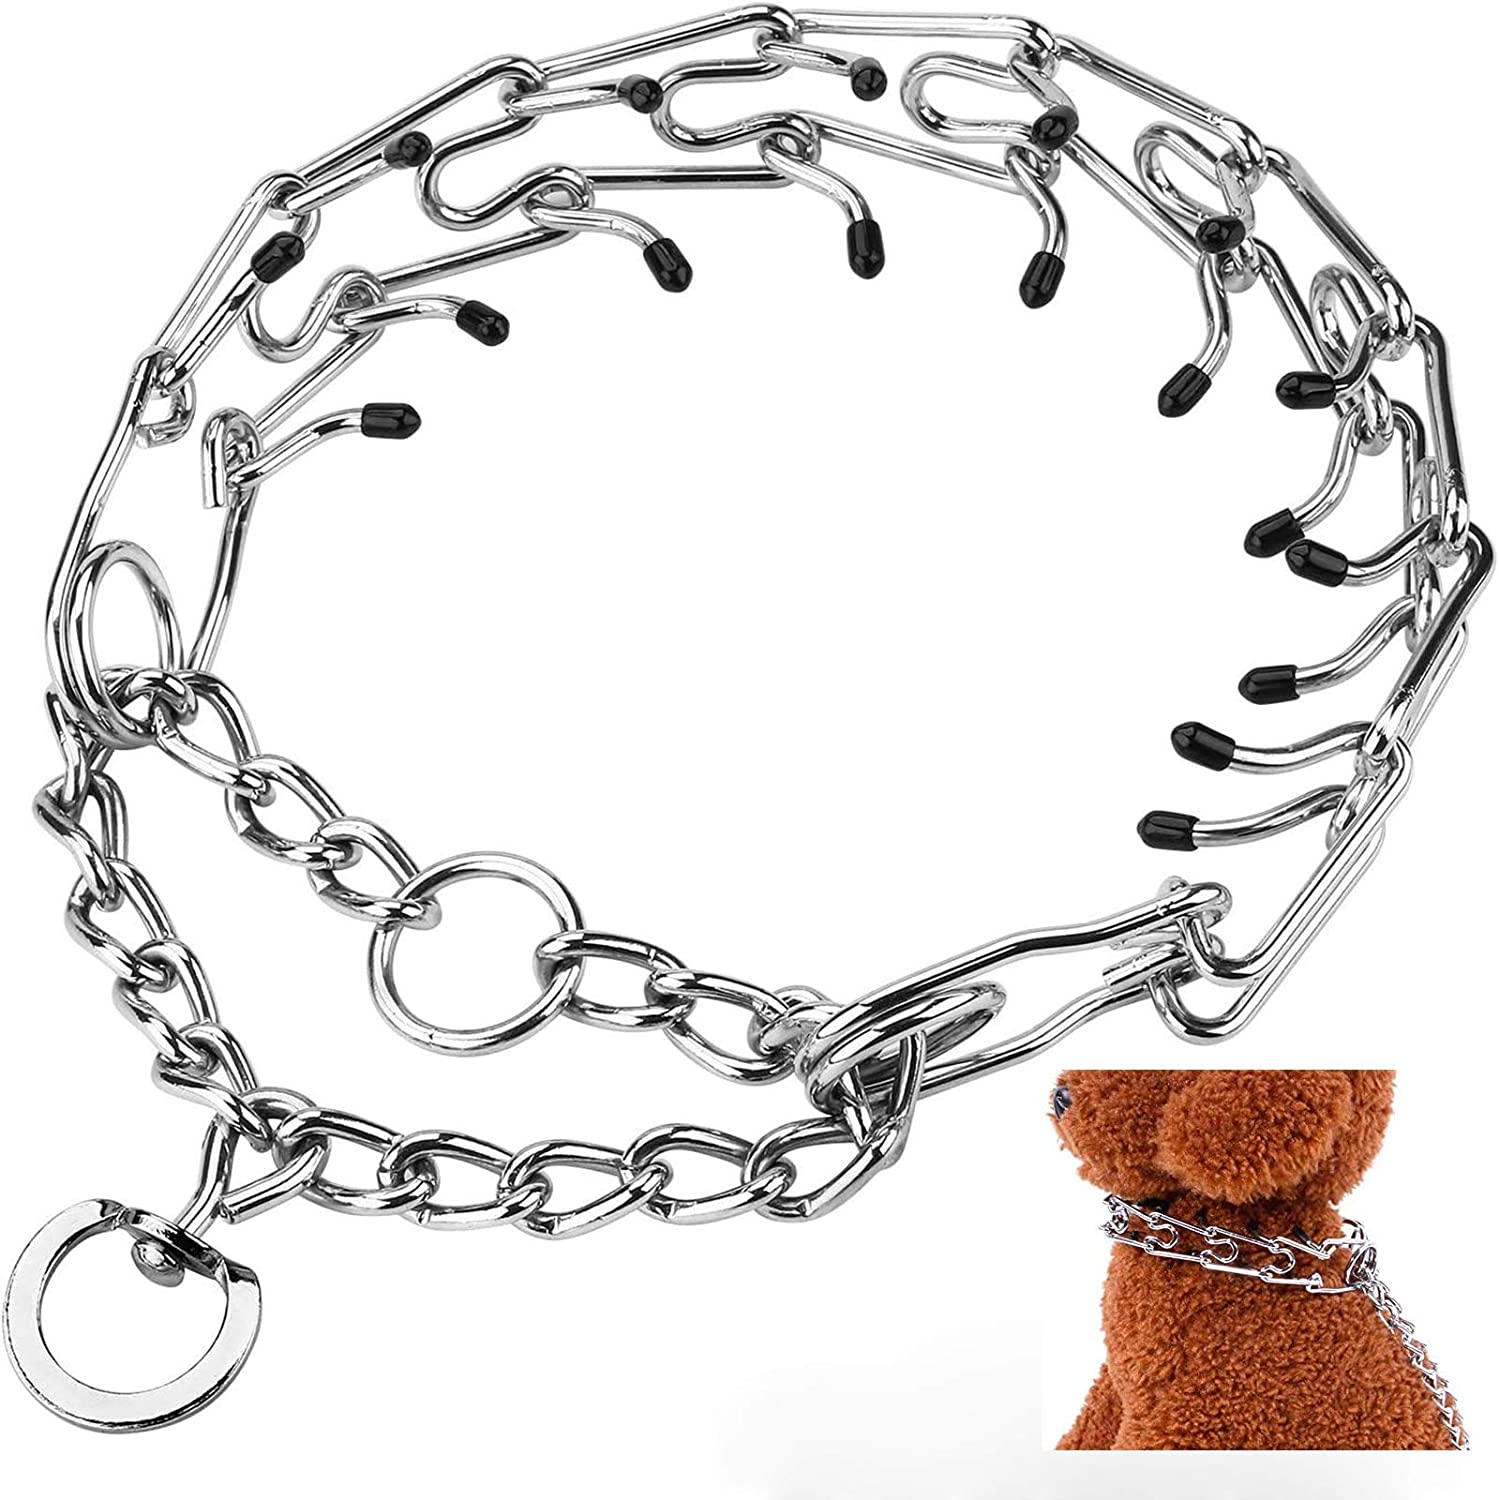 Adjustable Stainless Steel with Comfort Rubber Tips,Safe and Effective Nexsol Dog Prong Training Collar S